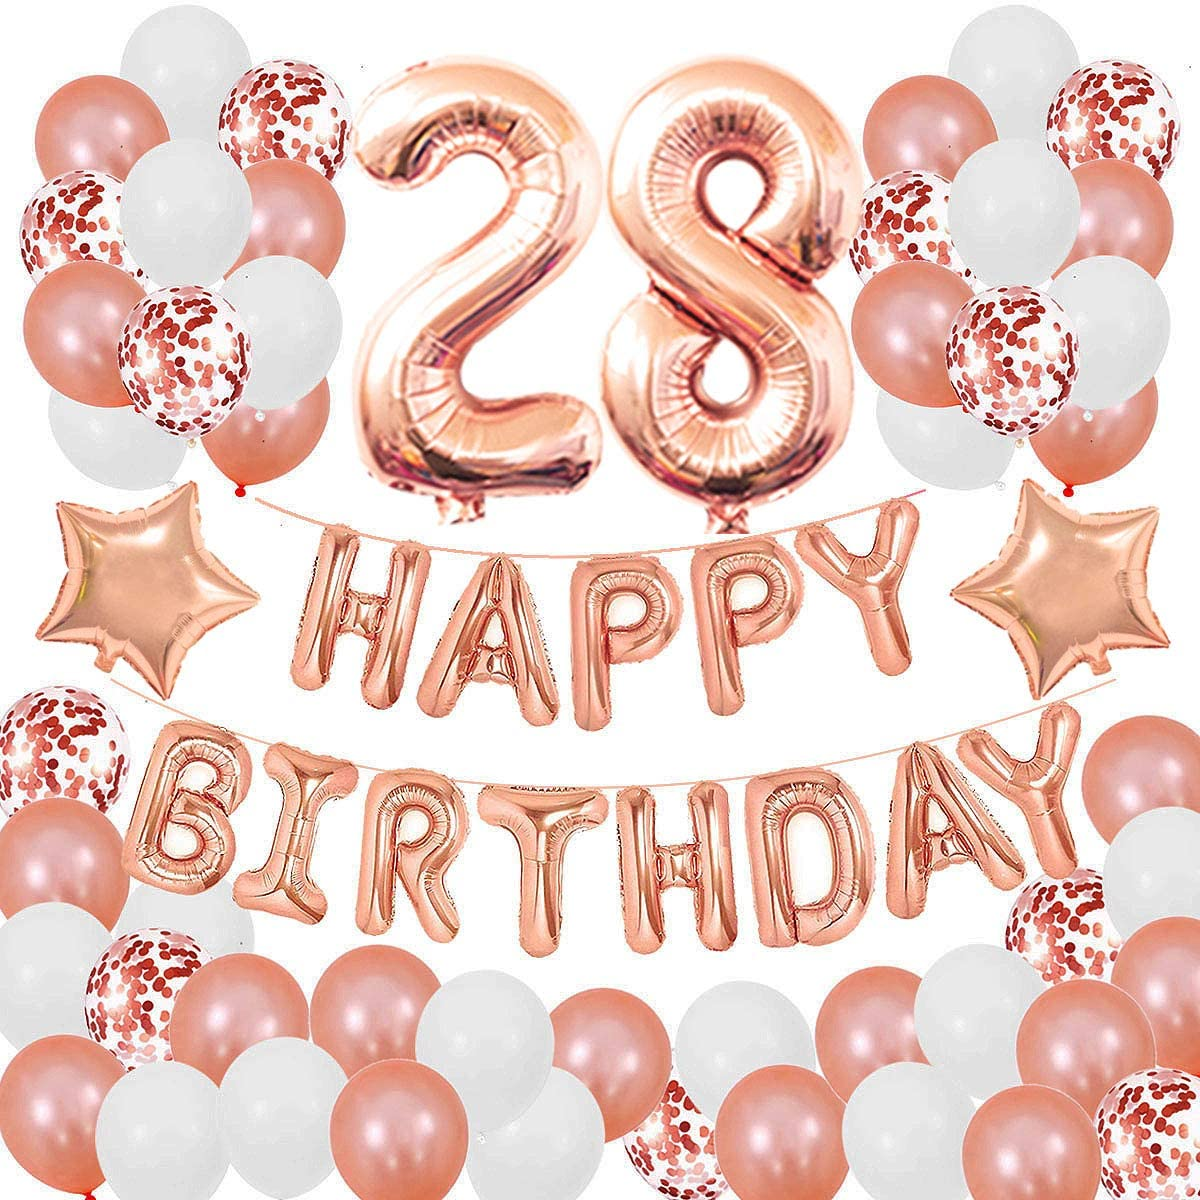 Succris 28TH Birthday Decorations for Girls and Women 28th Birthday Decorations 28 Years Old Birthday Party Supplies Happy Birthday Banner Rose Gold Confetti Balloons Rose Gold